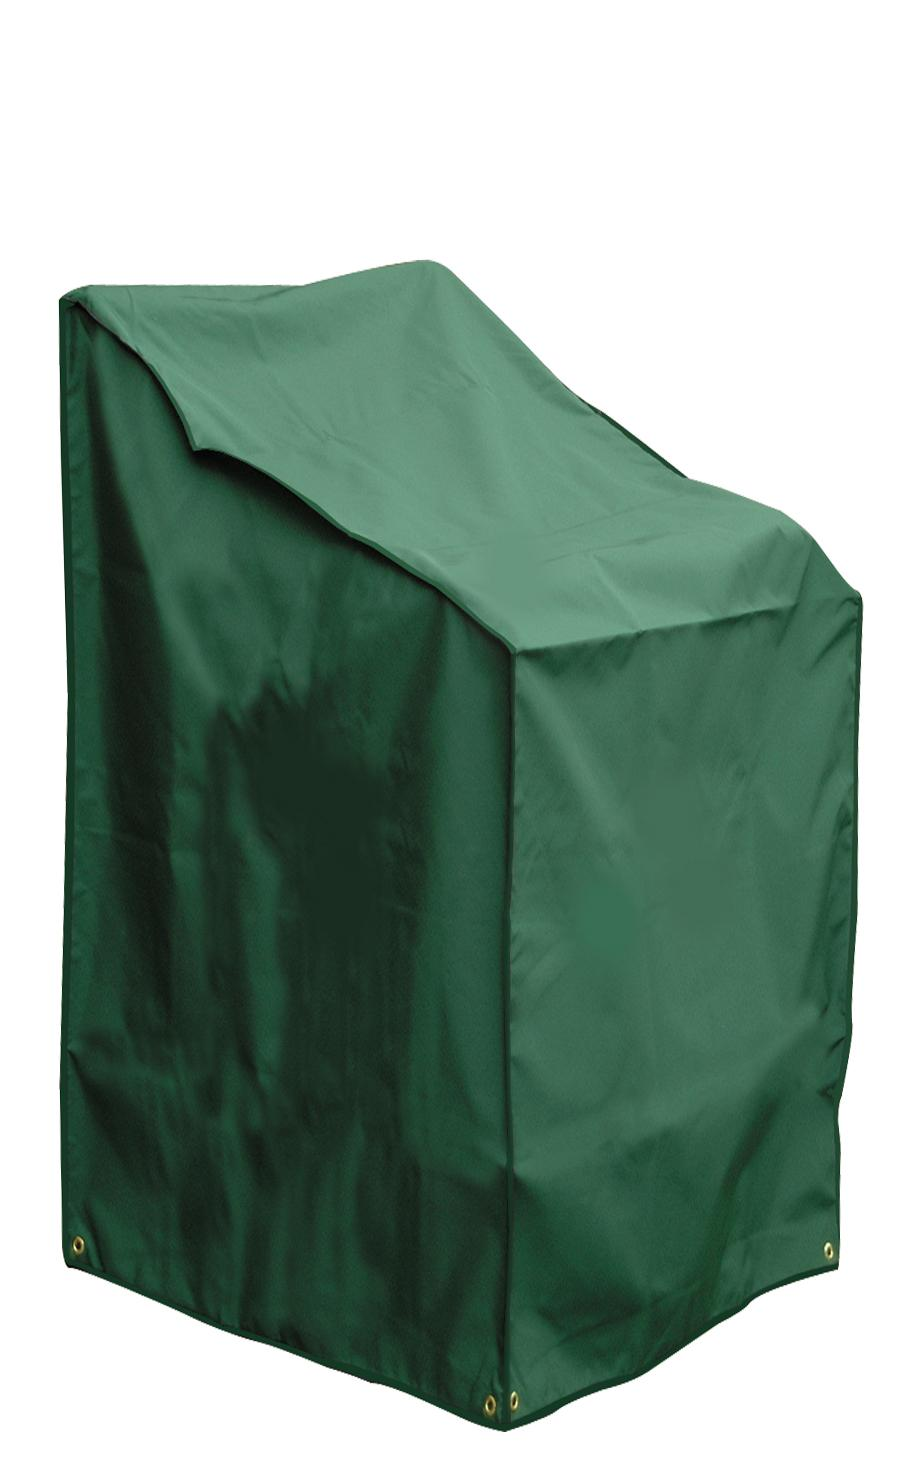 bosmere garden furniture covers uk